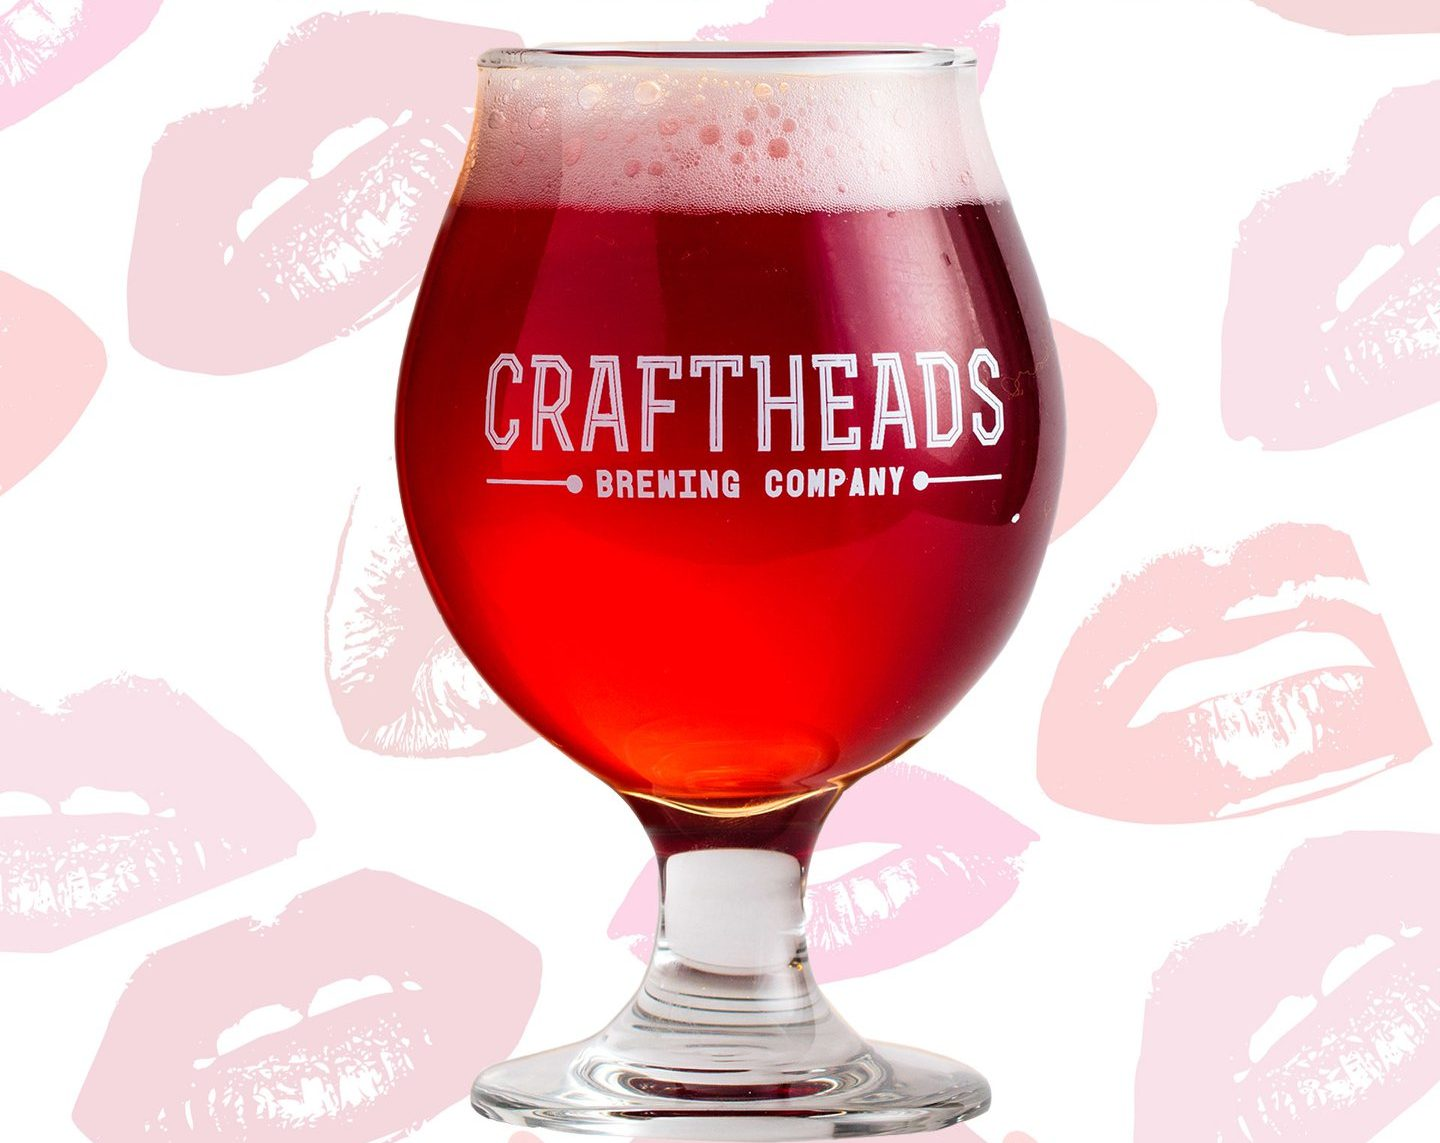 Hibisc-Kiss from Craft Heads Brewing Co. in Windsor, Ontario. It's a Gose brewed with hibiscus petals and sea salt.